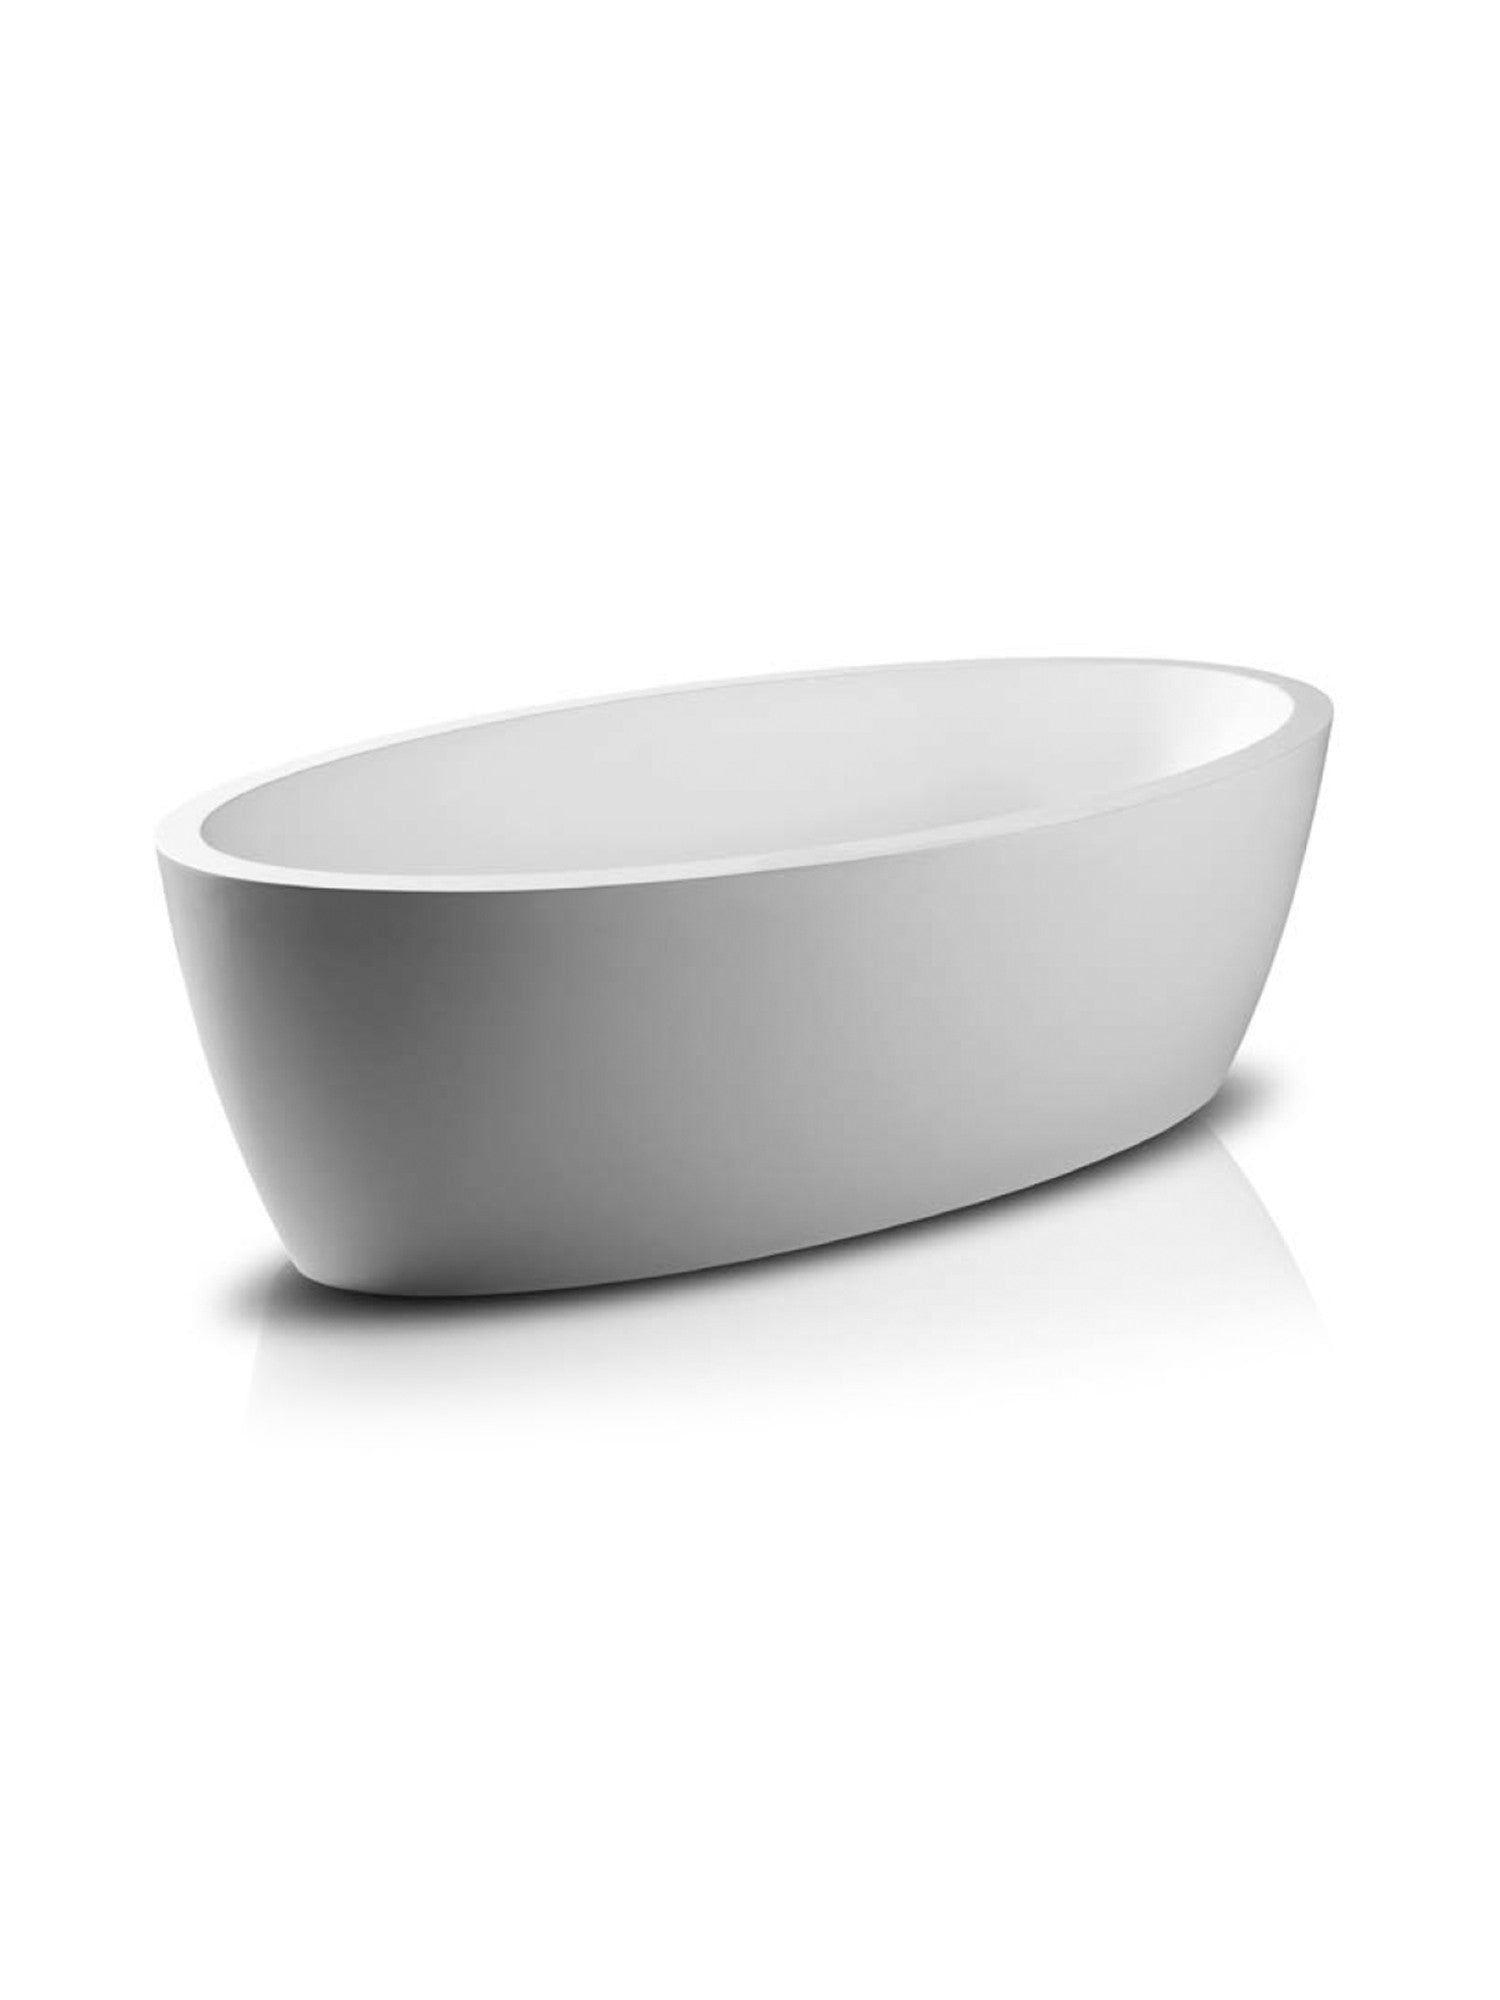 Maya Freestanding Bathtub #SBM040